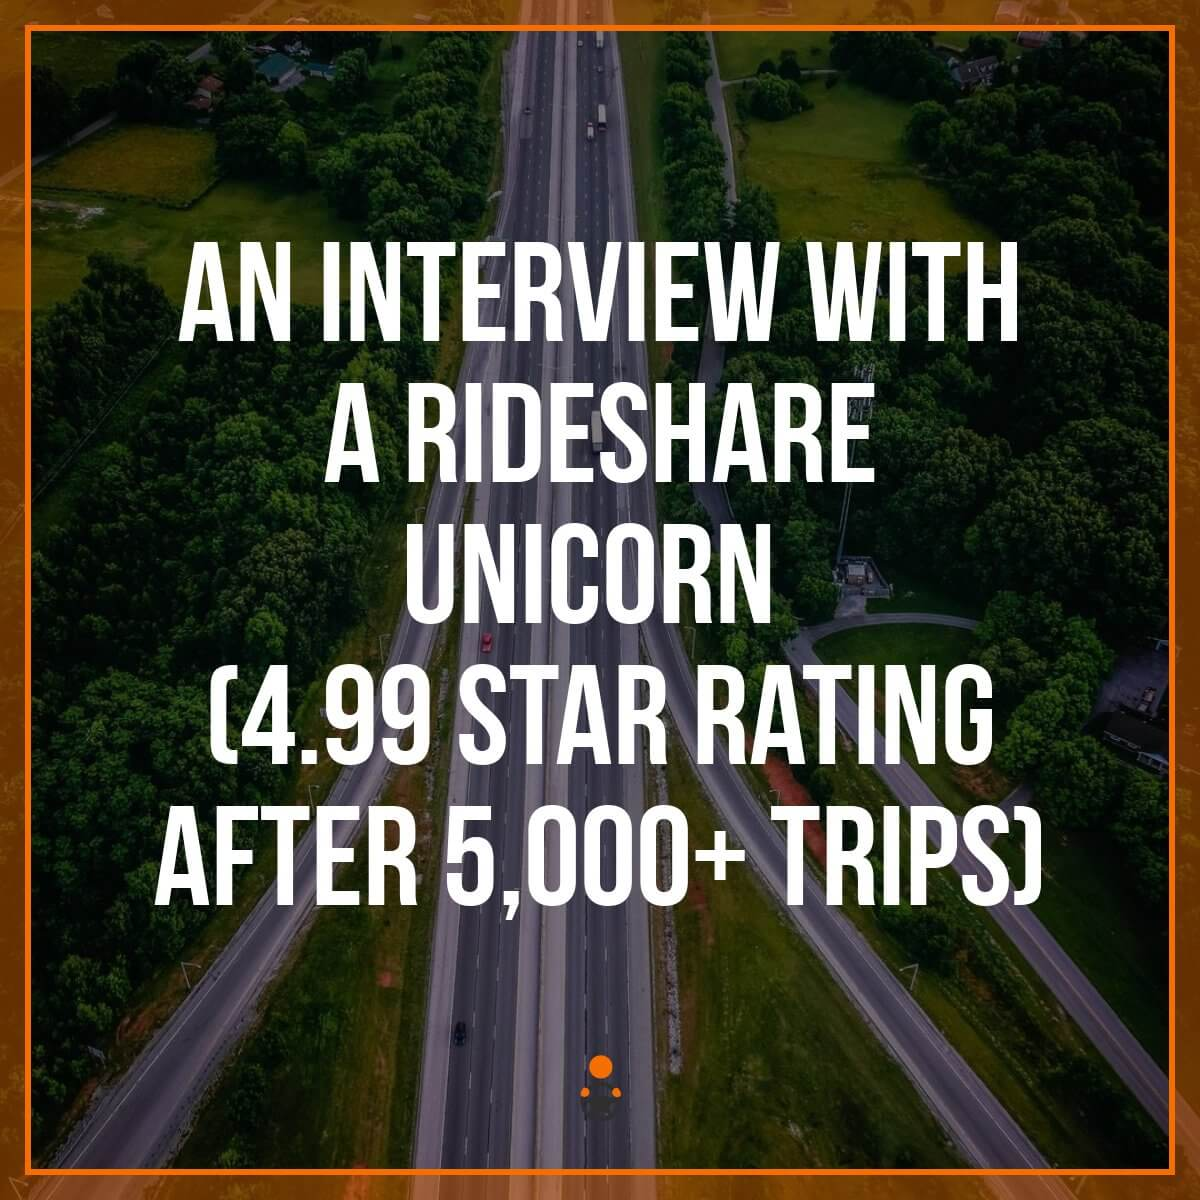 In this episode, I interview a rideshare unicorn! This driver has done over 5k rides and has a 4.99 rating. How?! We discuss driver ratings and more here.